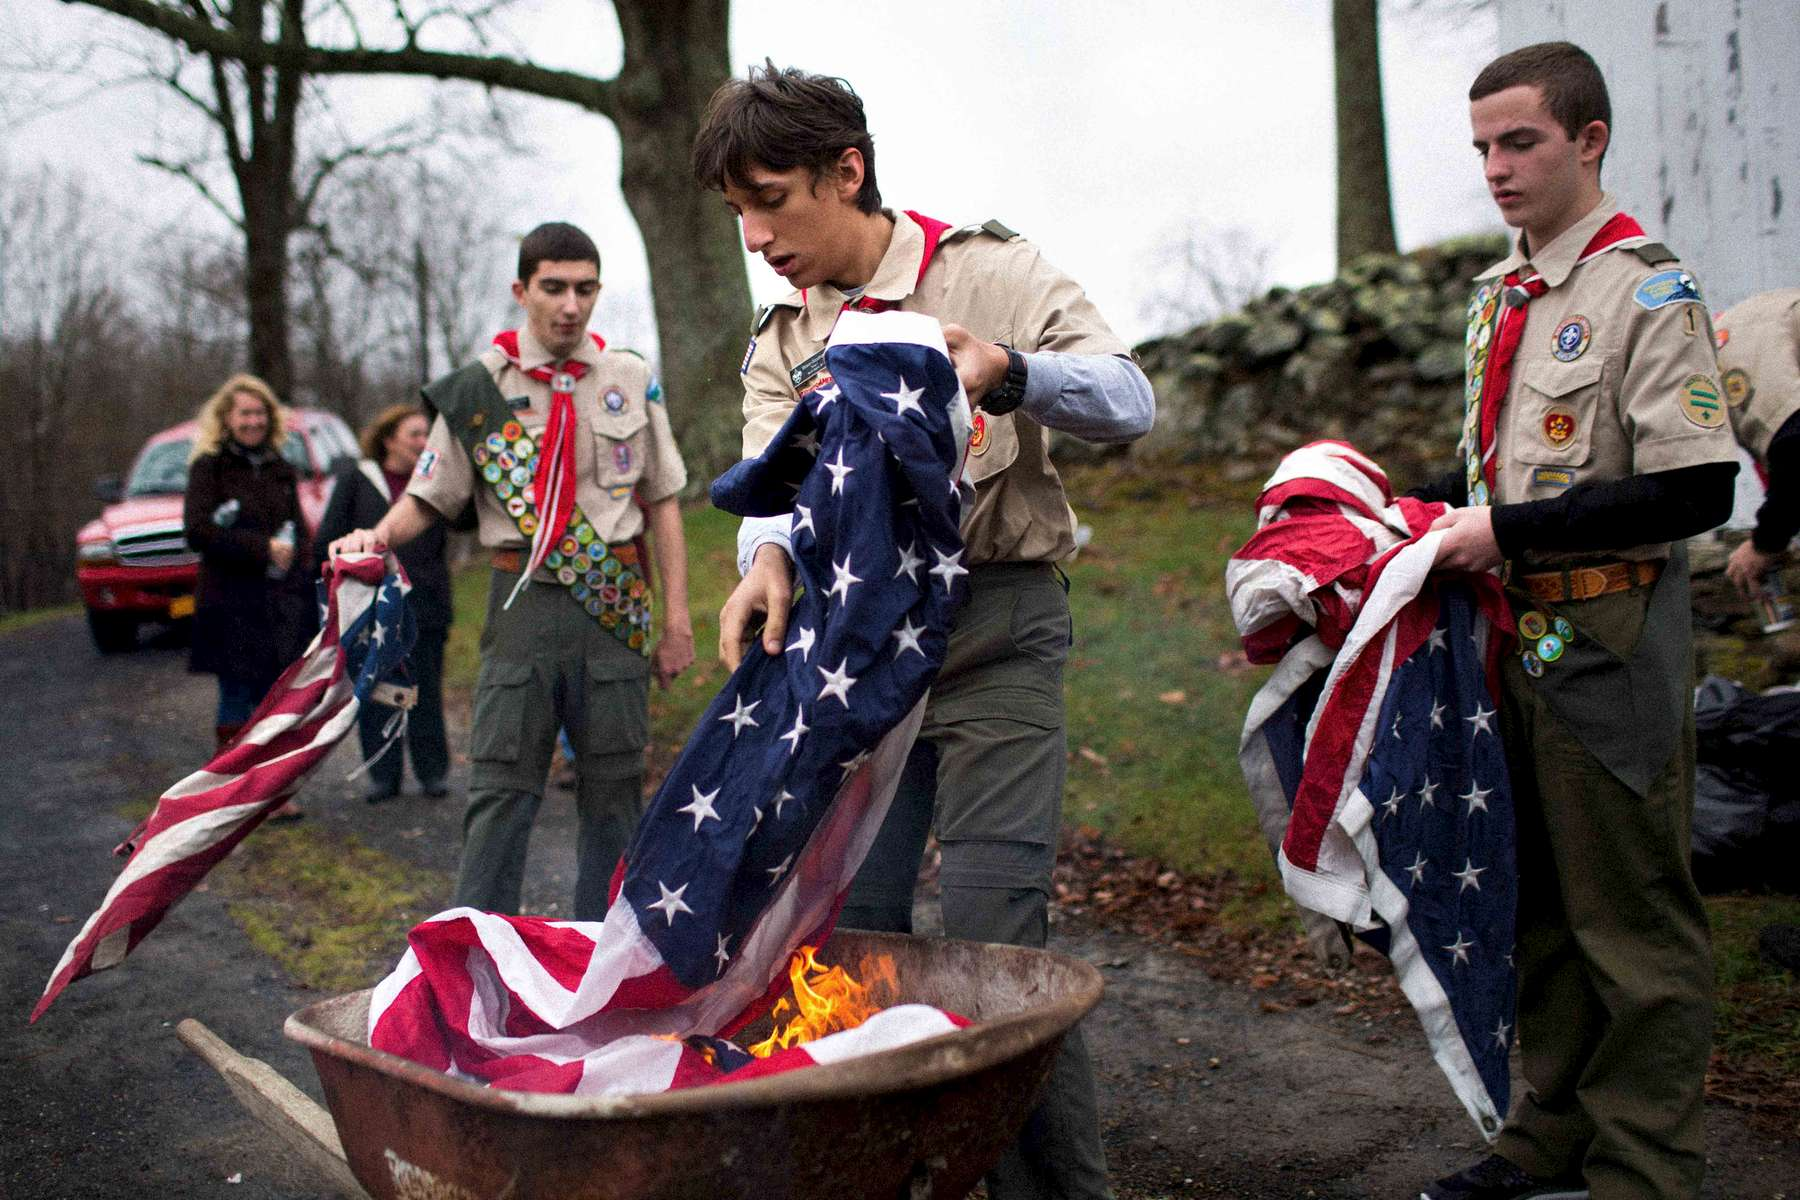 North Salem, NY - November 9, 2015: North Salem Troop 1 Boy Scouts Matthew Posa, 17, at left, Mason Goodman, 16, and David Posa, 15, burn flags as part of a flag retirement ceremony at the June Cemetery in North Salem, NY Wednesday Nov. 11, 2015. Lois Colley, 83, a Westchester County socialite, was murdered Monday night at her home in North Salem. CREDIT: Kevin Hagen for The New York Times